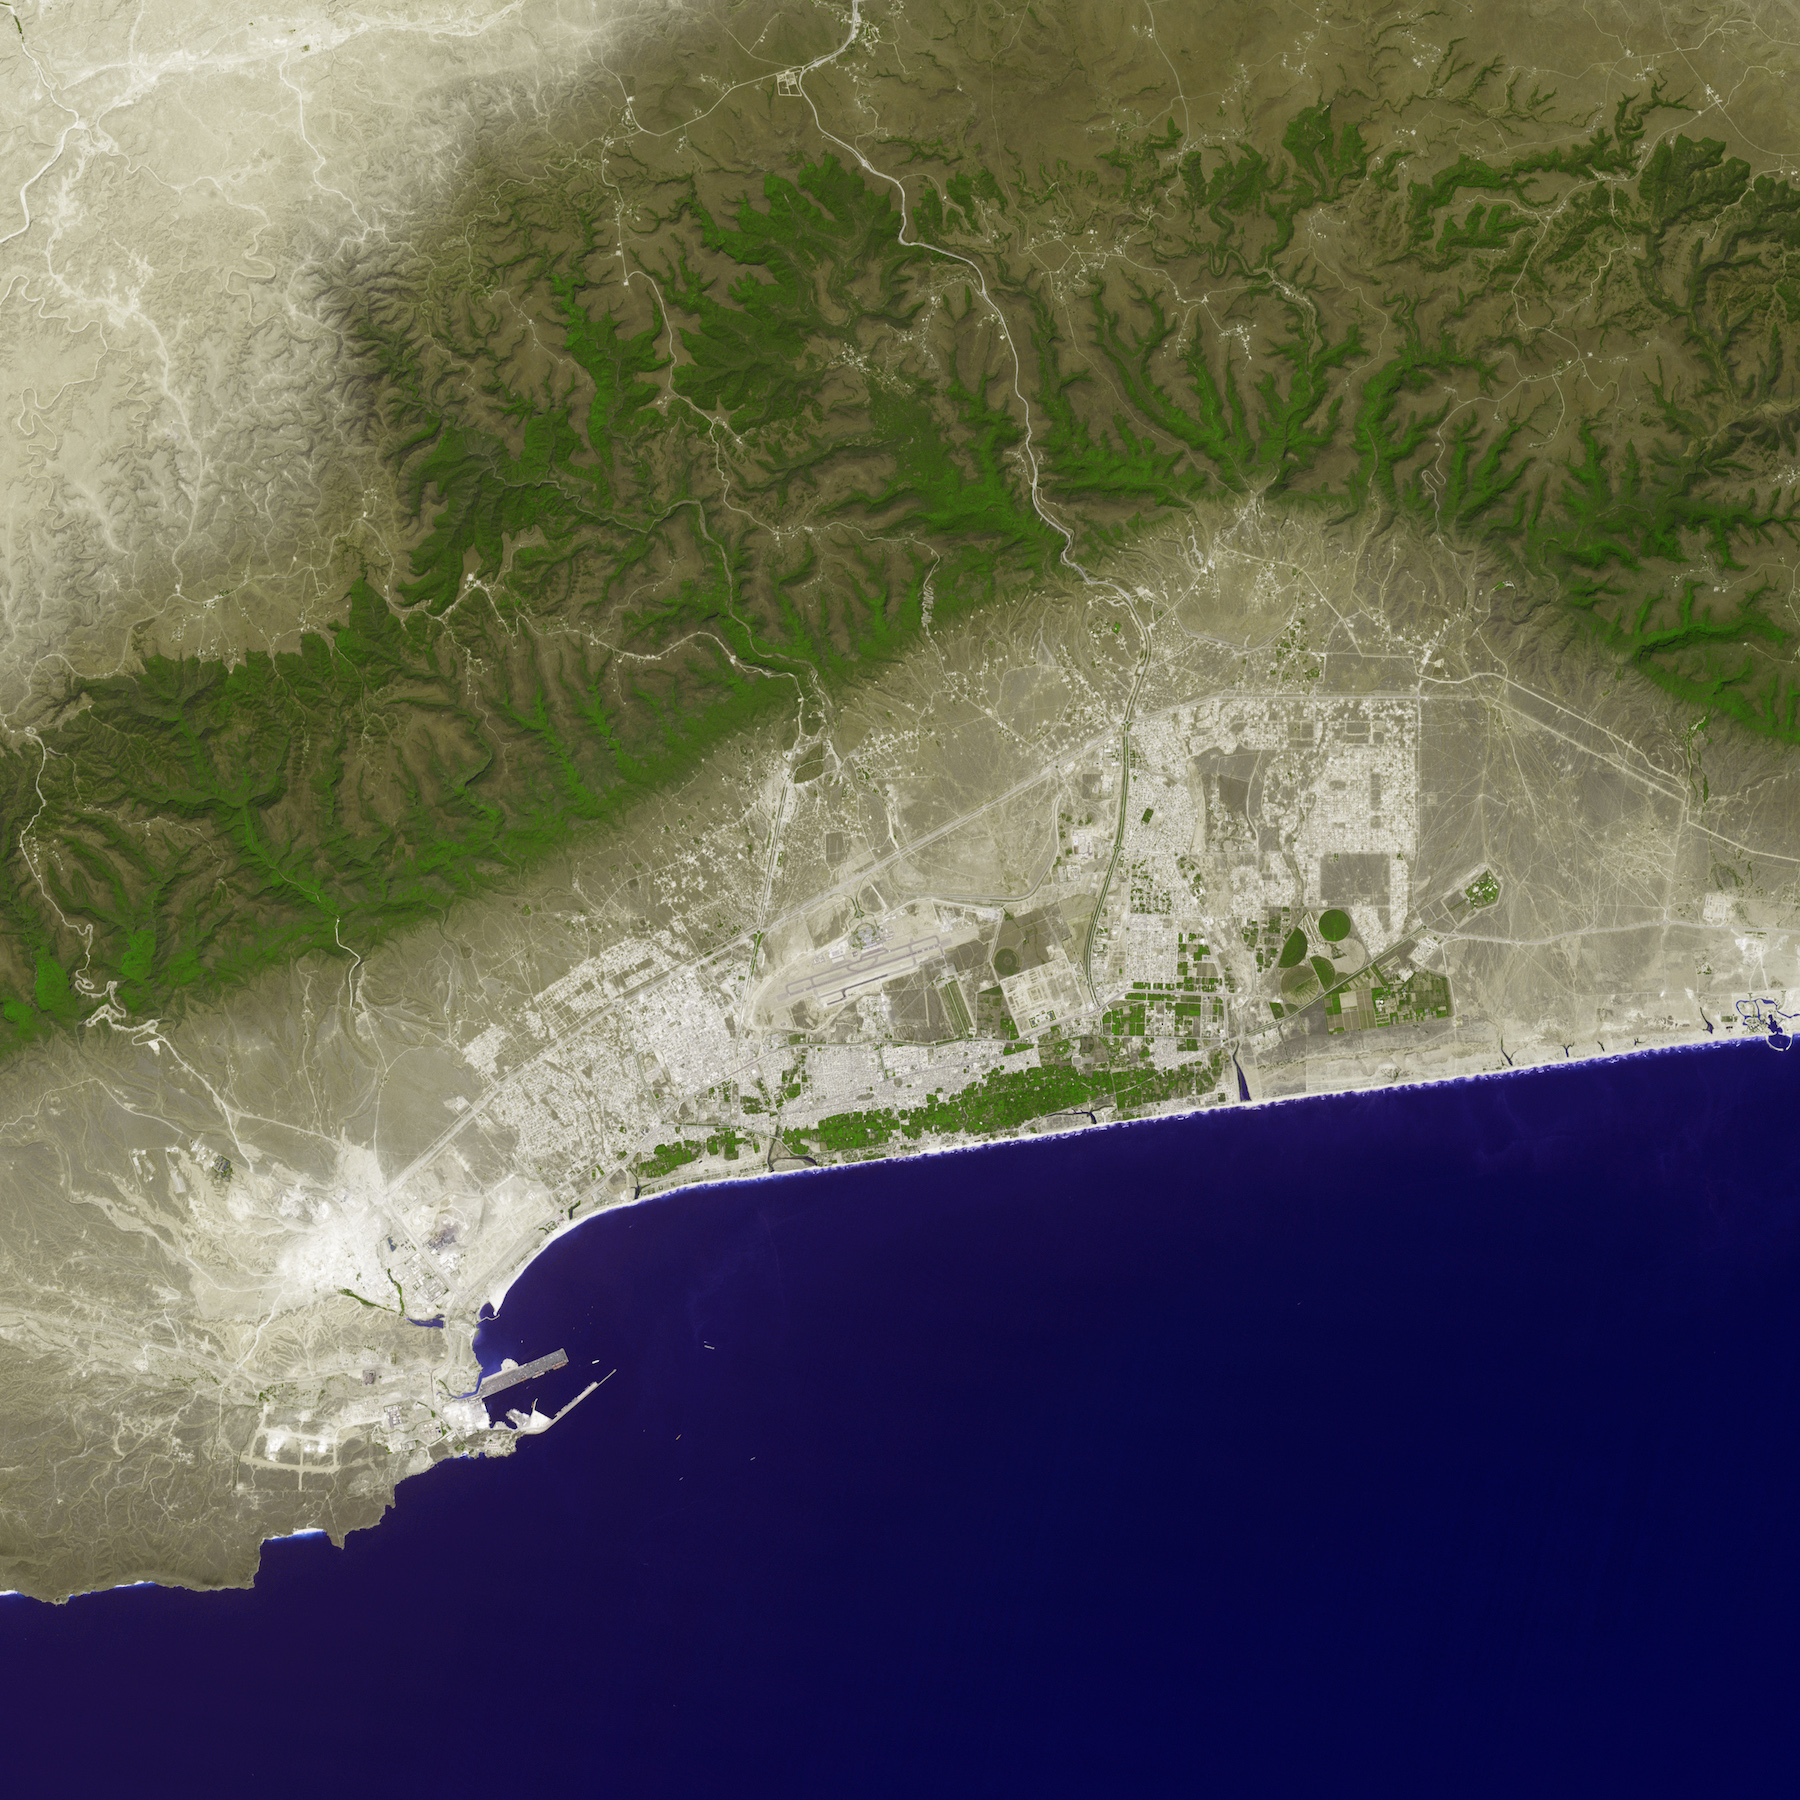 Today's Image of the Day comes thanks to the NASA Earth Observatory and features a look at the city of Salalah, Oman from space.